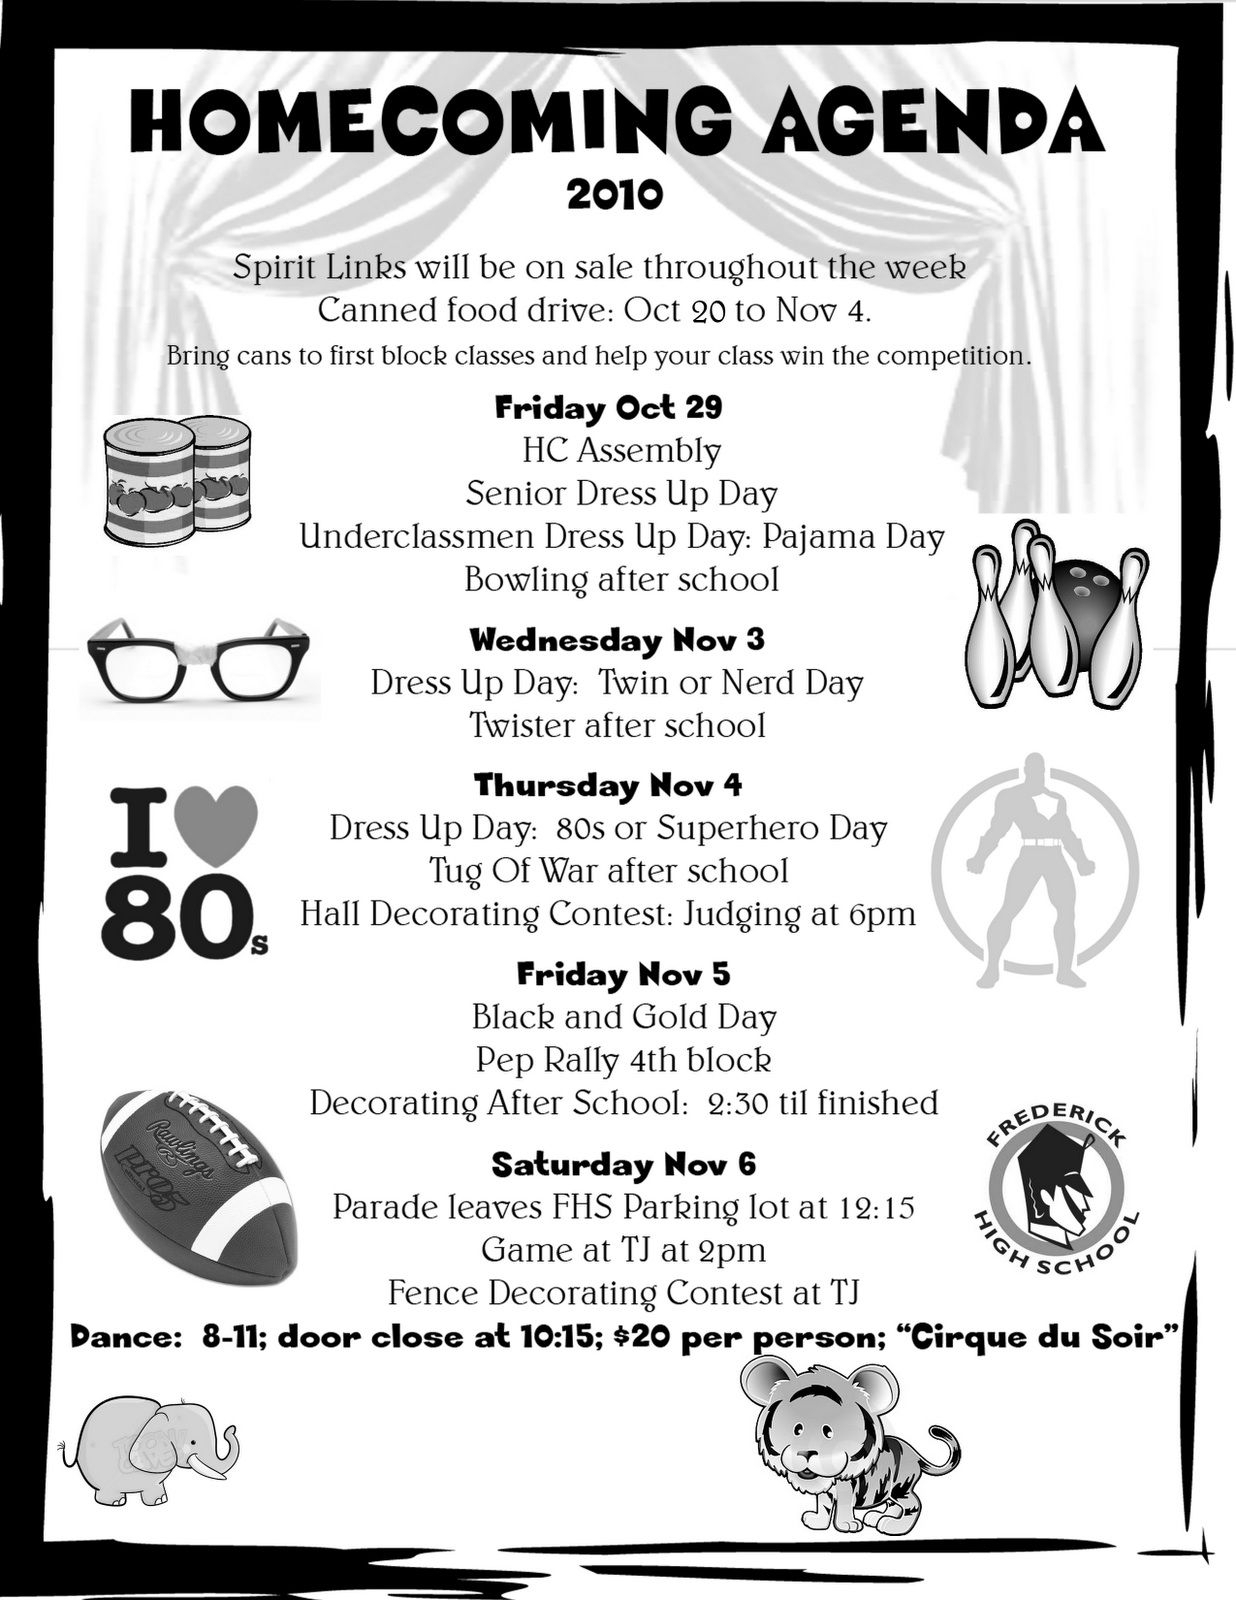 10 Spectacular High School Homecoming Week Ideas homecoming week spirit days student council ideas homecoming